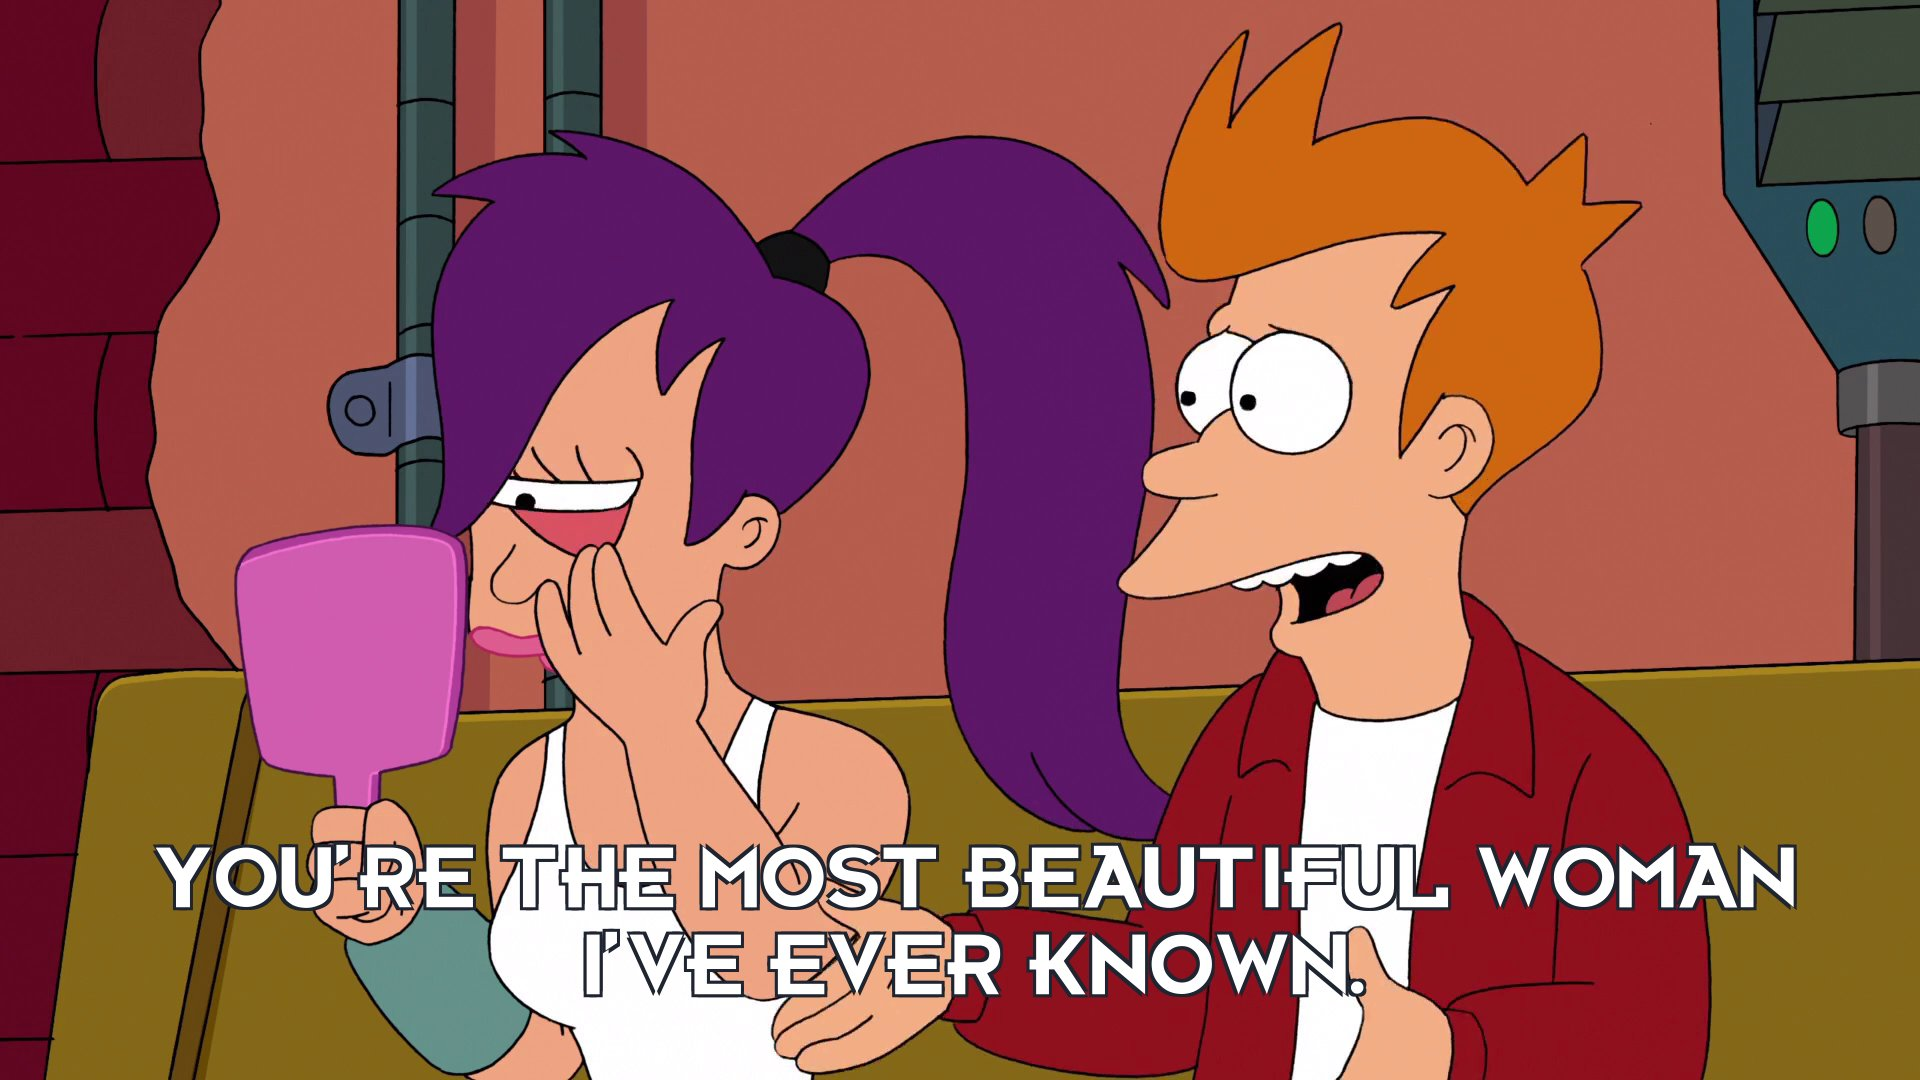 Philip J Fry: You're the most beautiful woman I've ever known.